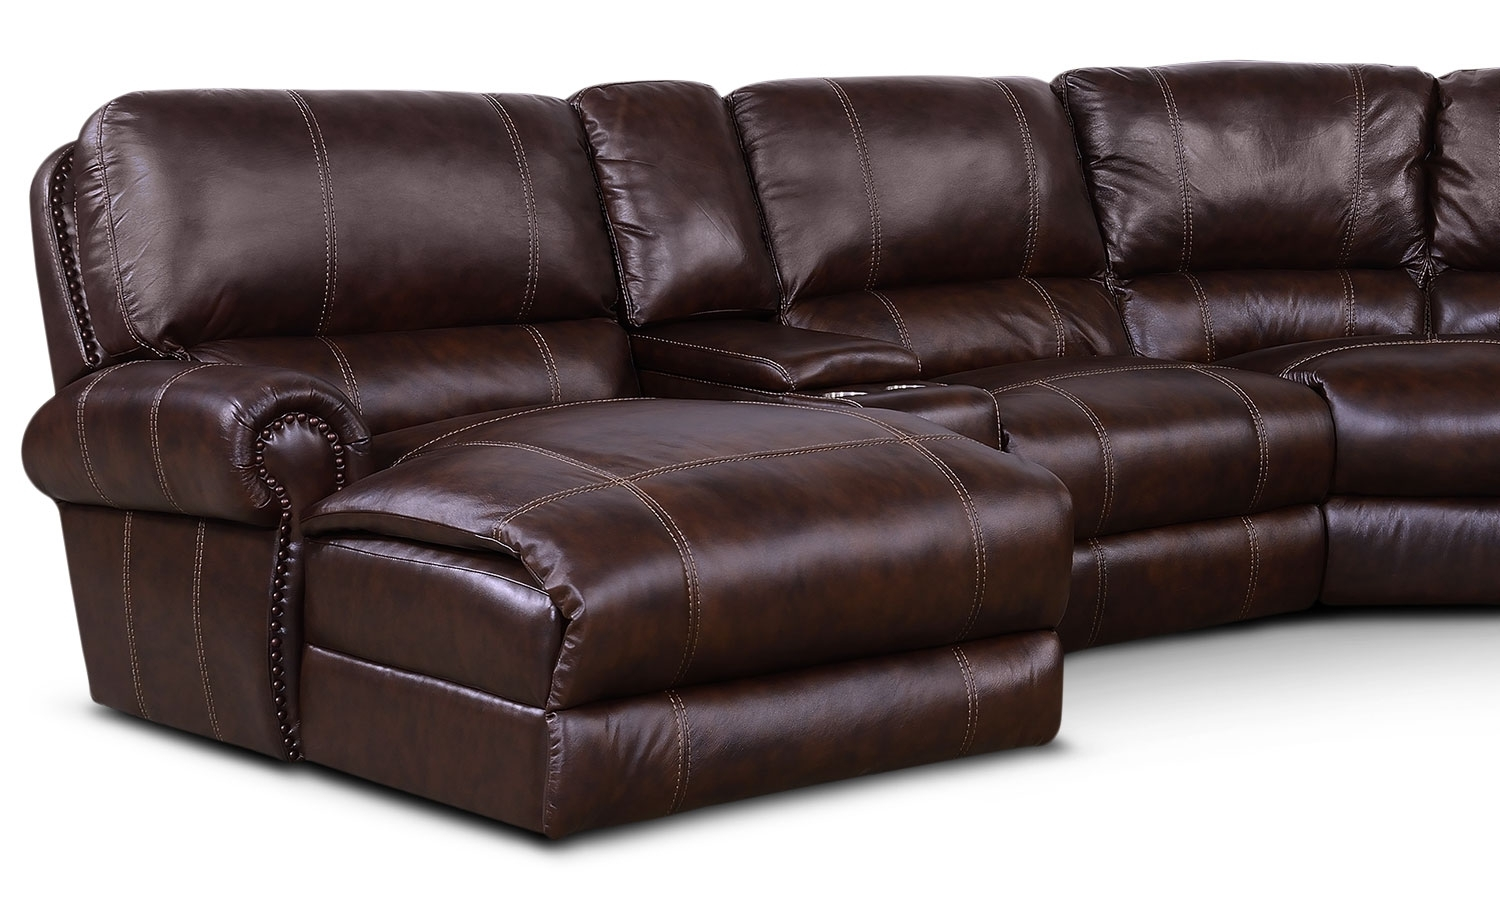 Dartmouth 6 Piece Power Reclining Sectional W/ Left Facing Chaise In Norfolk Chocolate 3 Piece Sectionals With Raf Chaise (Image 10 of 25)